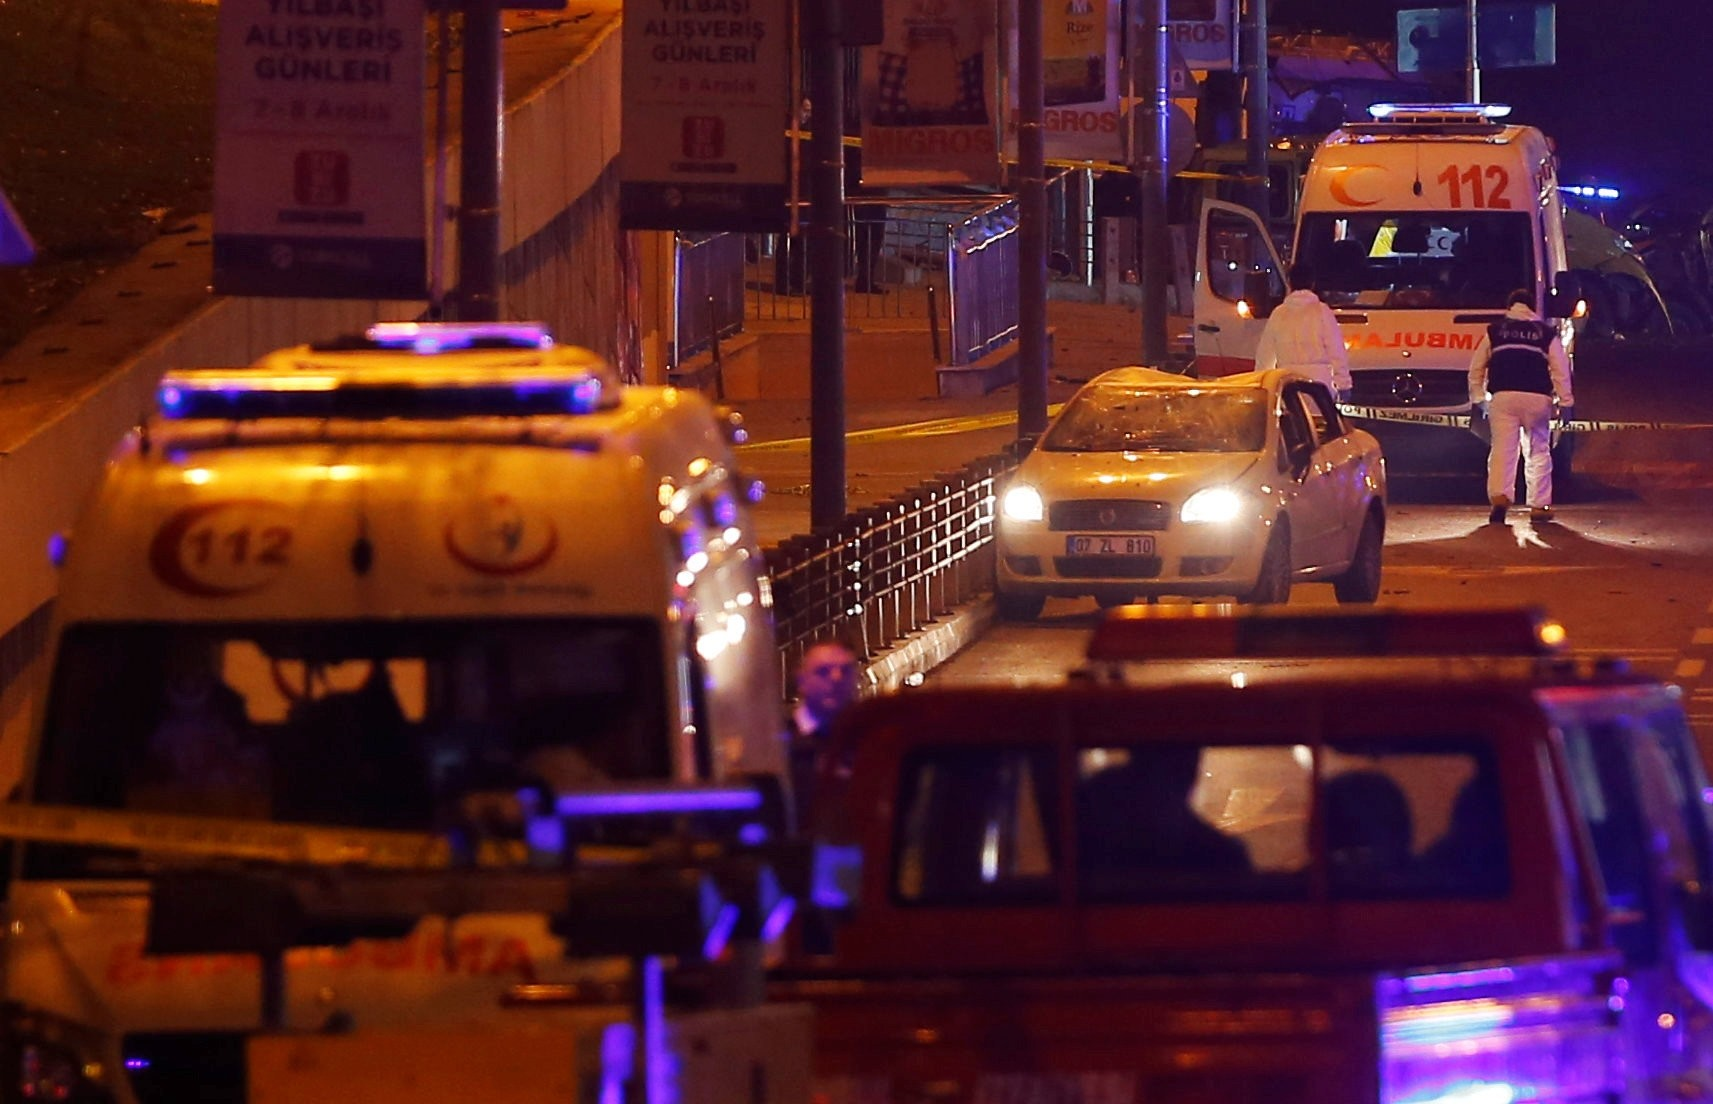 Police forensic experts examine the scene after a blast in Istanbul, Turkey, early December 11, 2016. (REUTERS Photo)